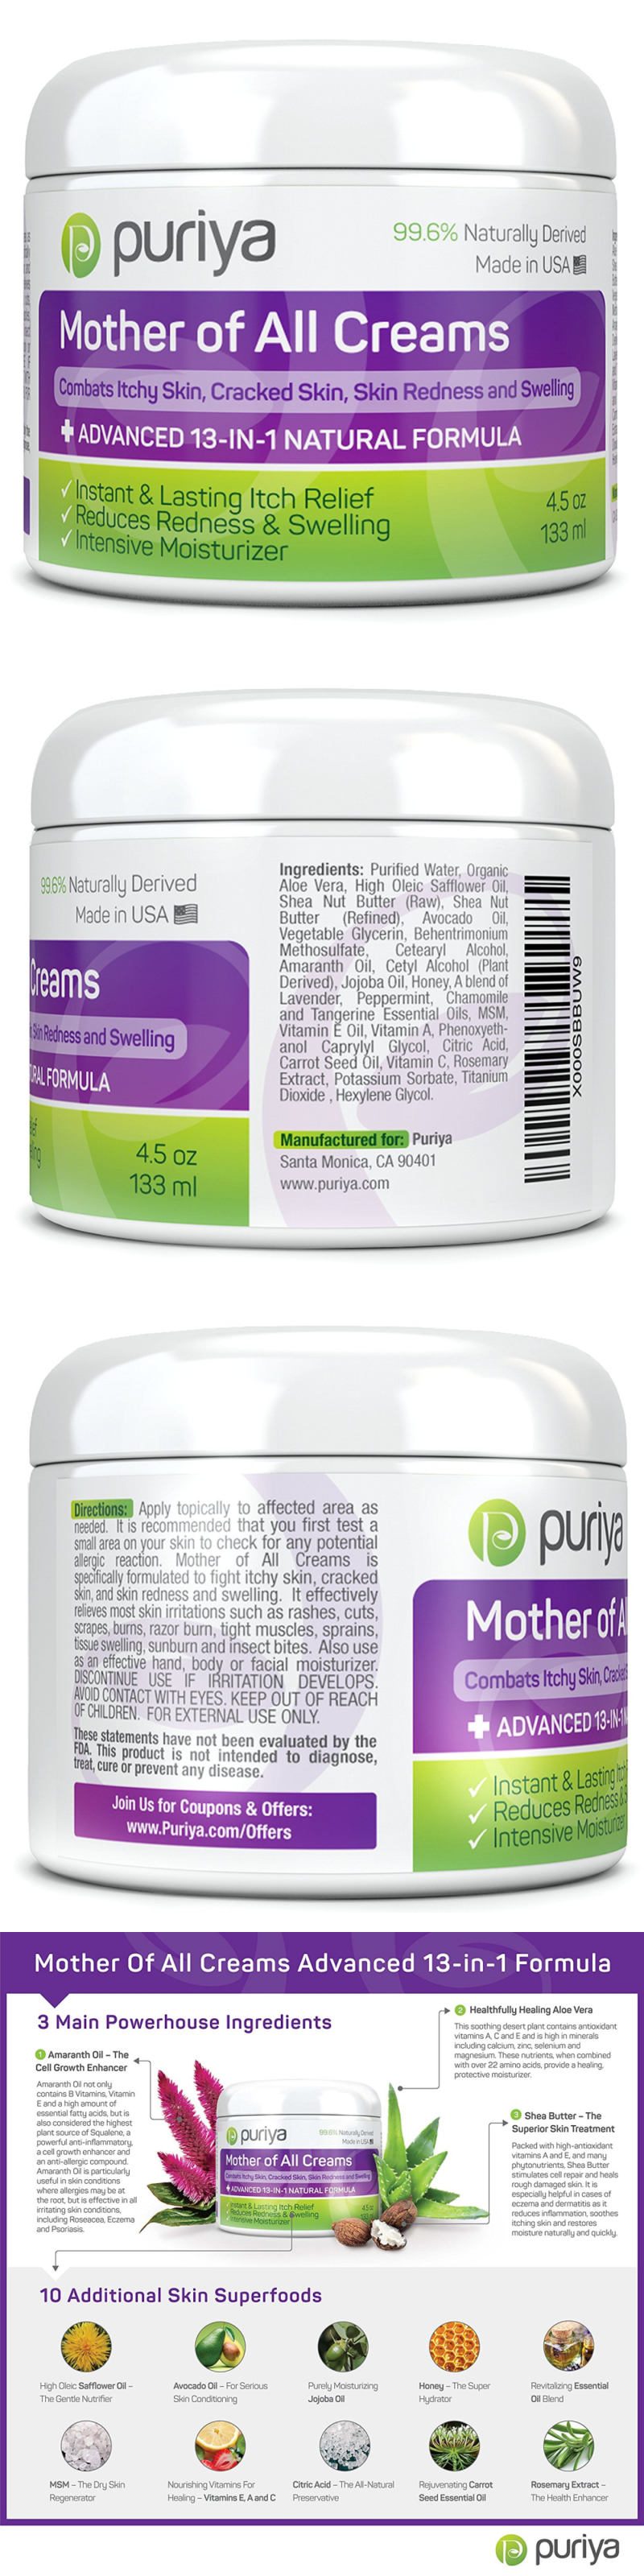 Other Skin Care Puriya Cream For Eczema Psoriasis Rashes